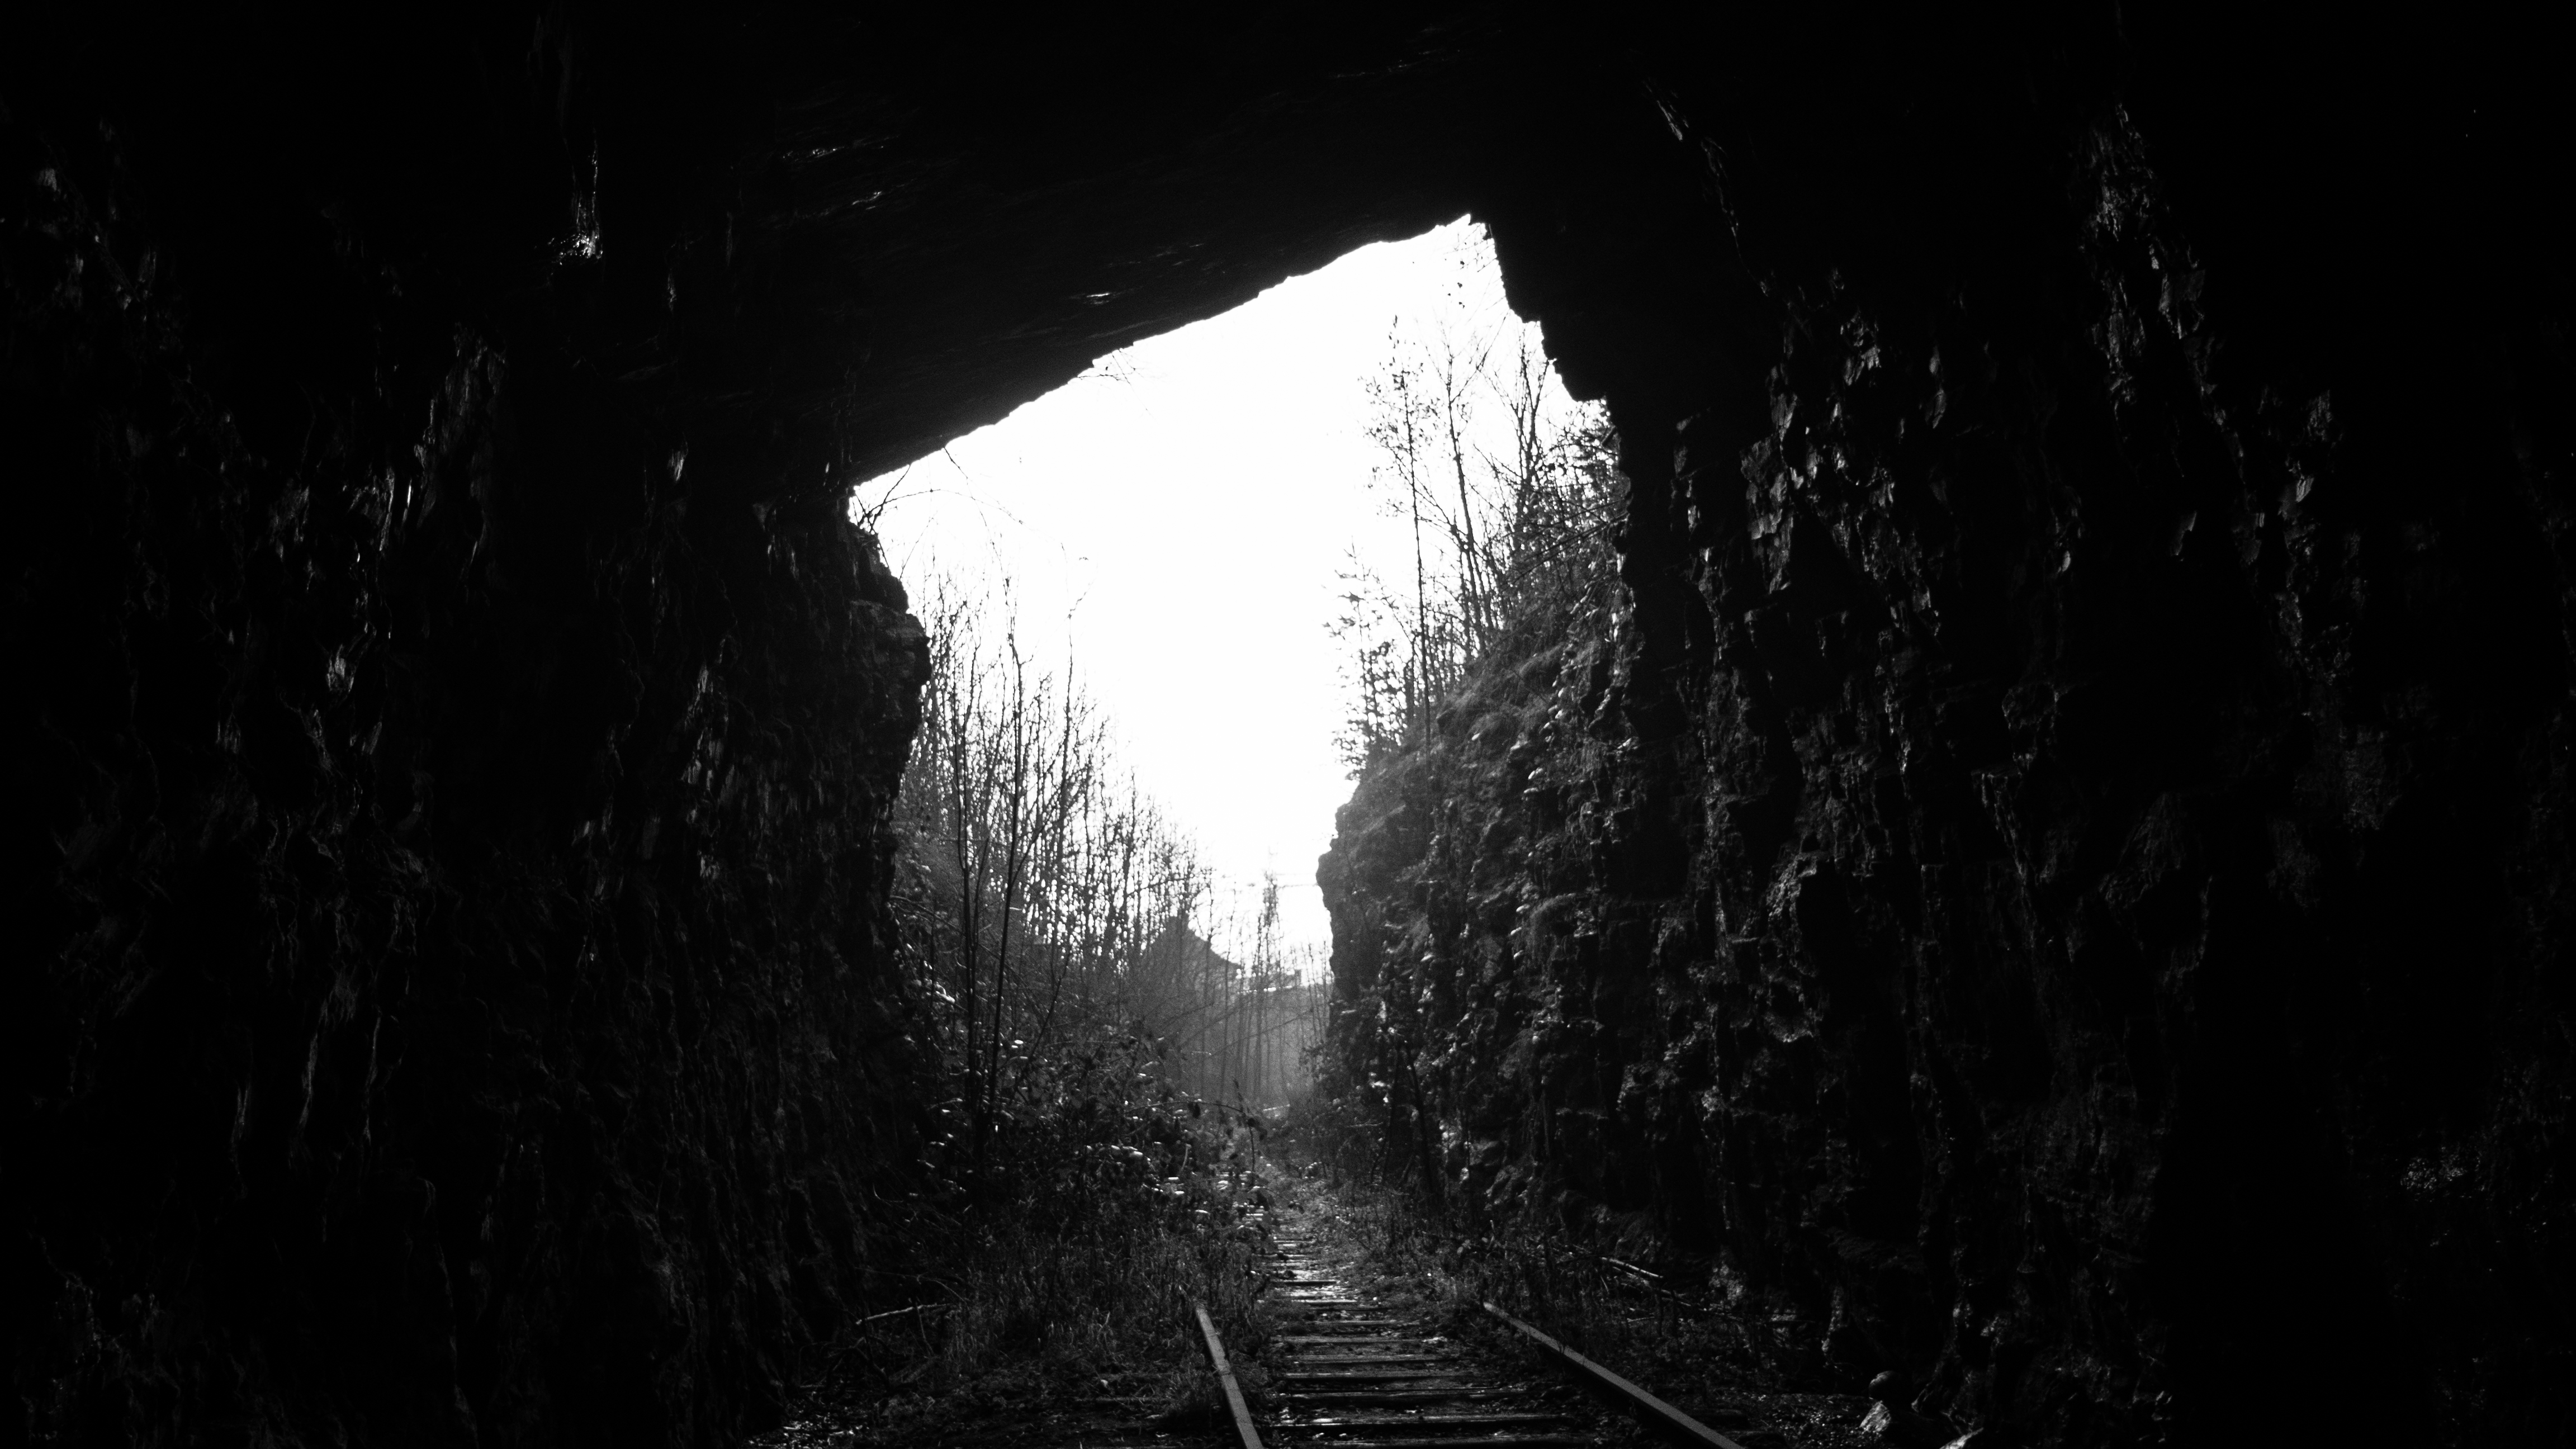 Image of a dark cave